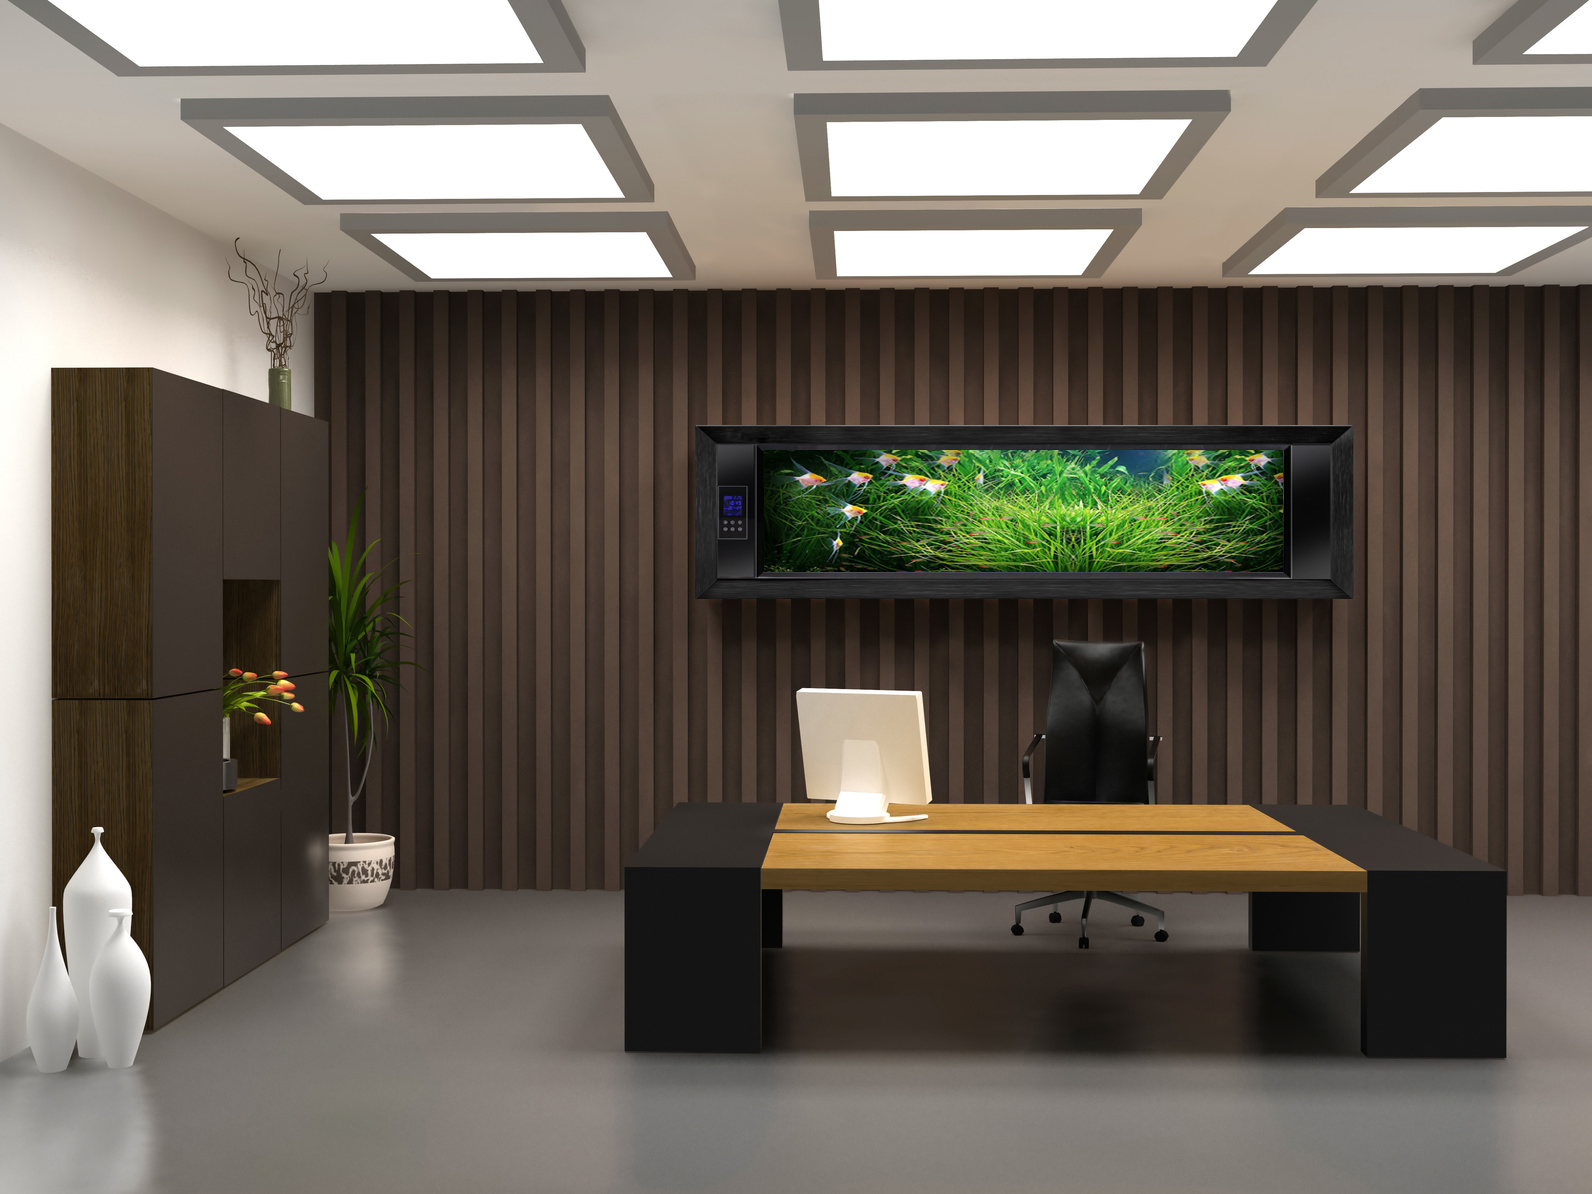 Elegant ceo office design bellisima for Office interior design pictures